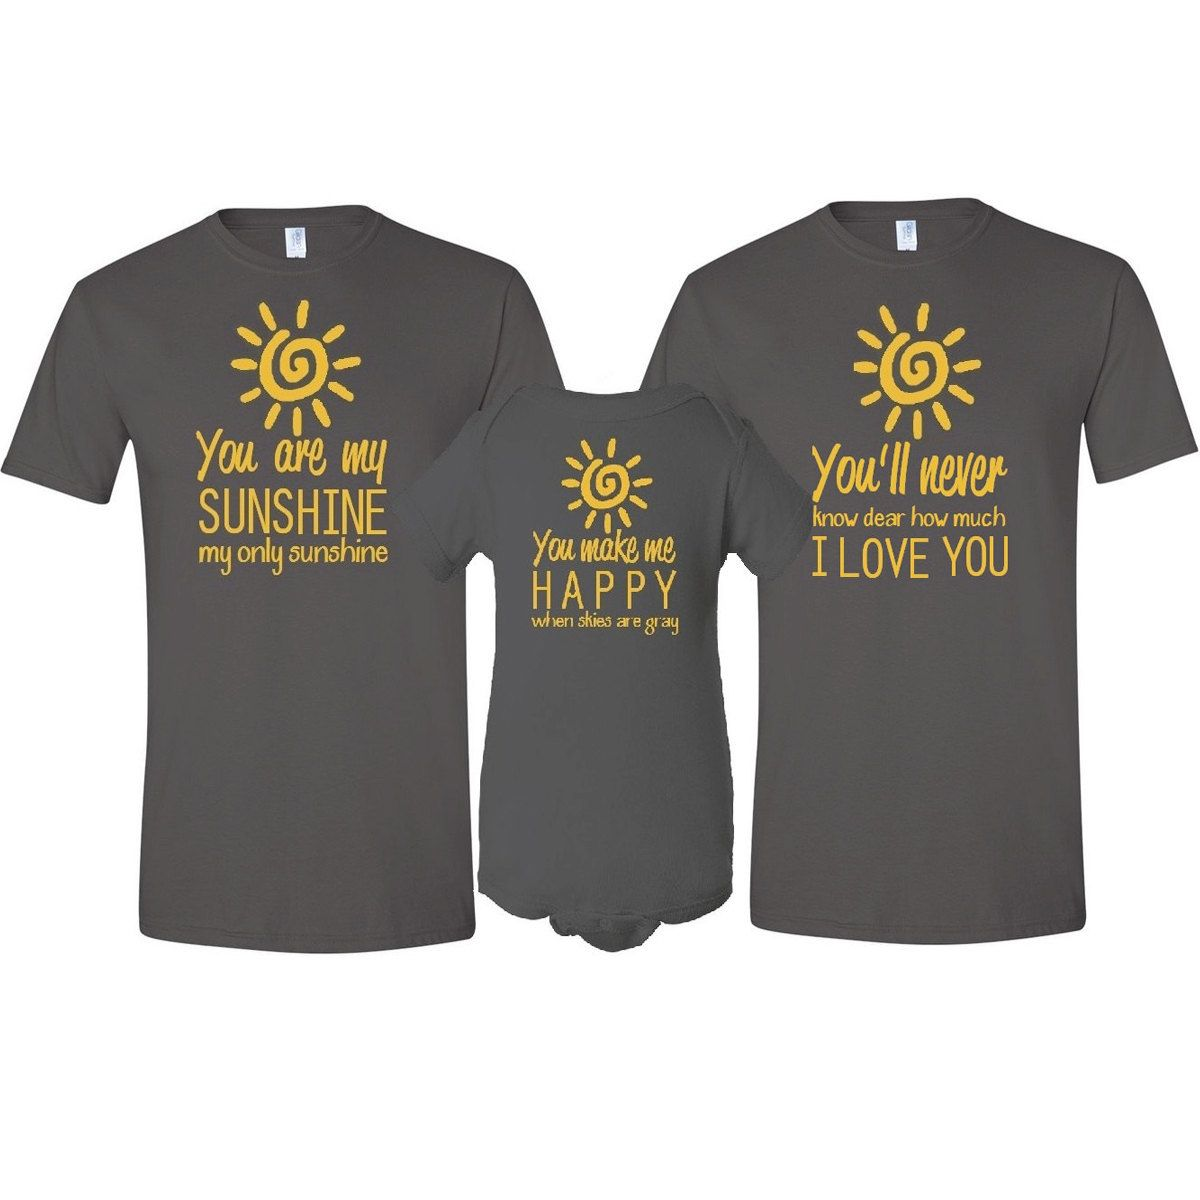 First Time Fathers Day Gifts Part - 25: You Are My Sunshine Father , Mother T-Shirt U0026 Son / Daughter Bodysuit  Matching 3 Piece Set Fatheru0027s Day Baby Shower Gift For First Time Dad